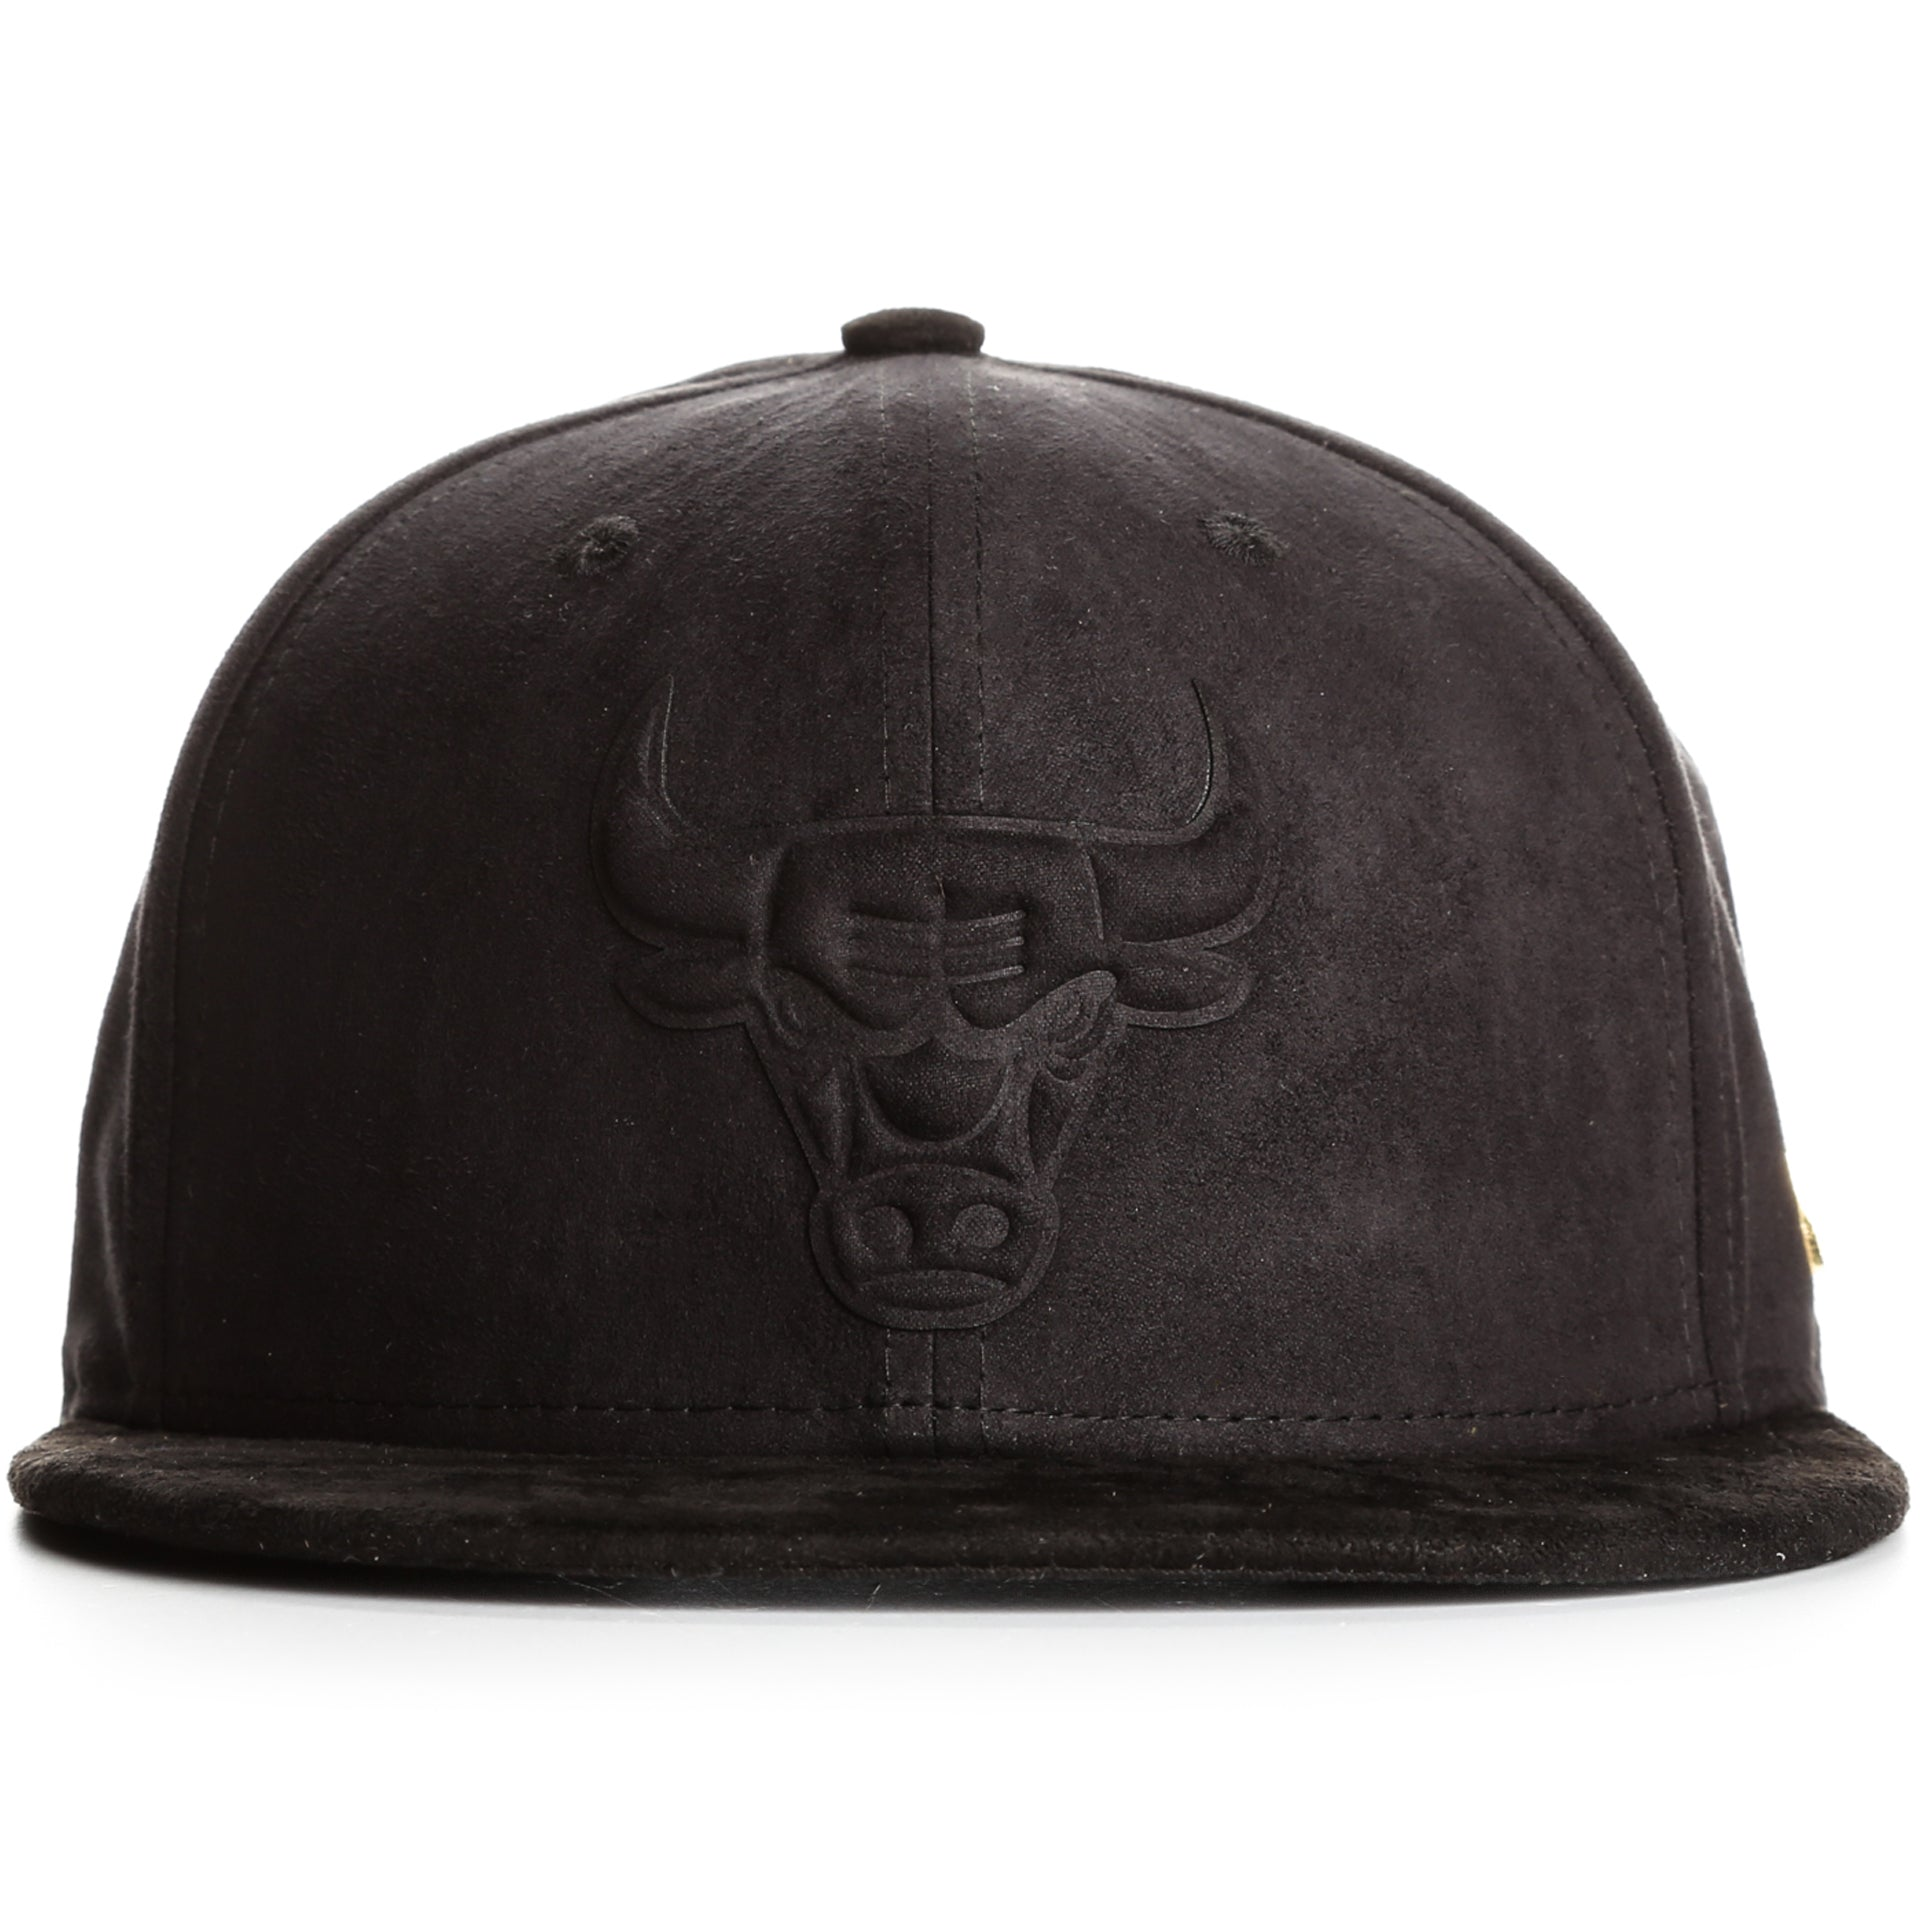 New Era 9Fifty Snakeskin Chicago Bulls Strapback - Black - New Star cd27a627a